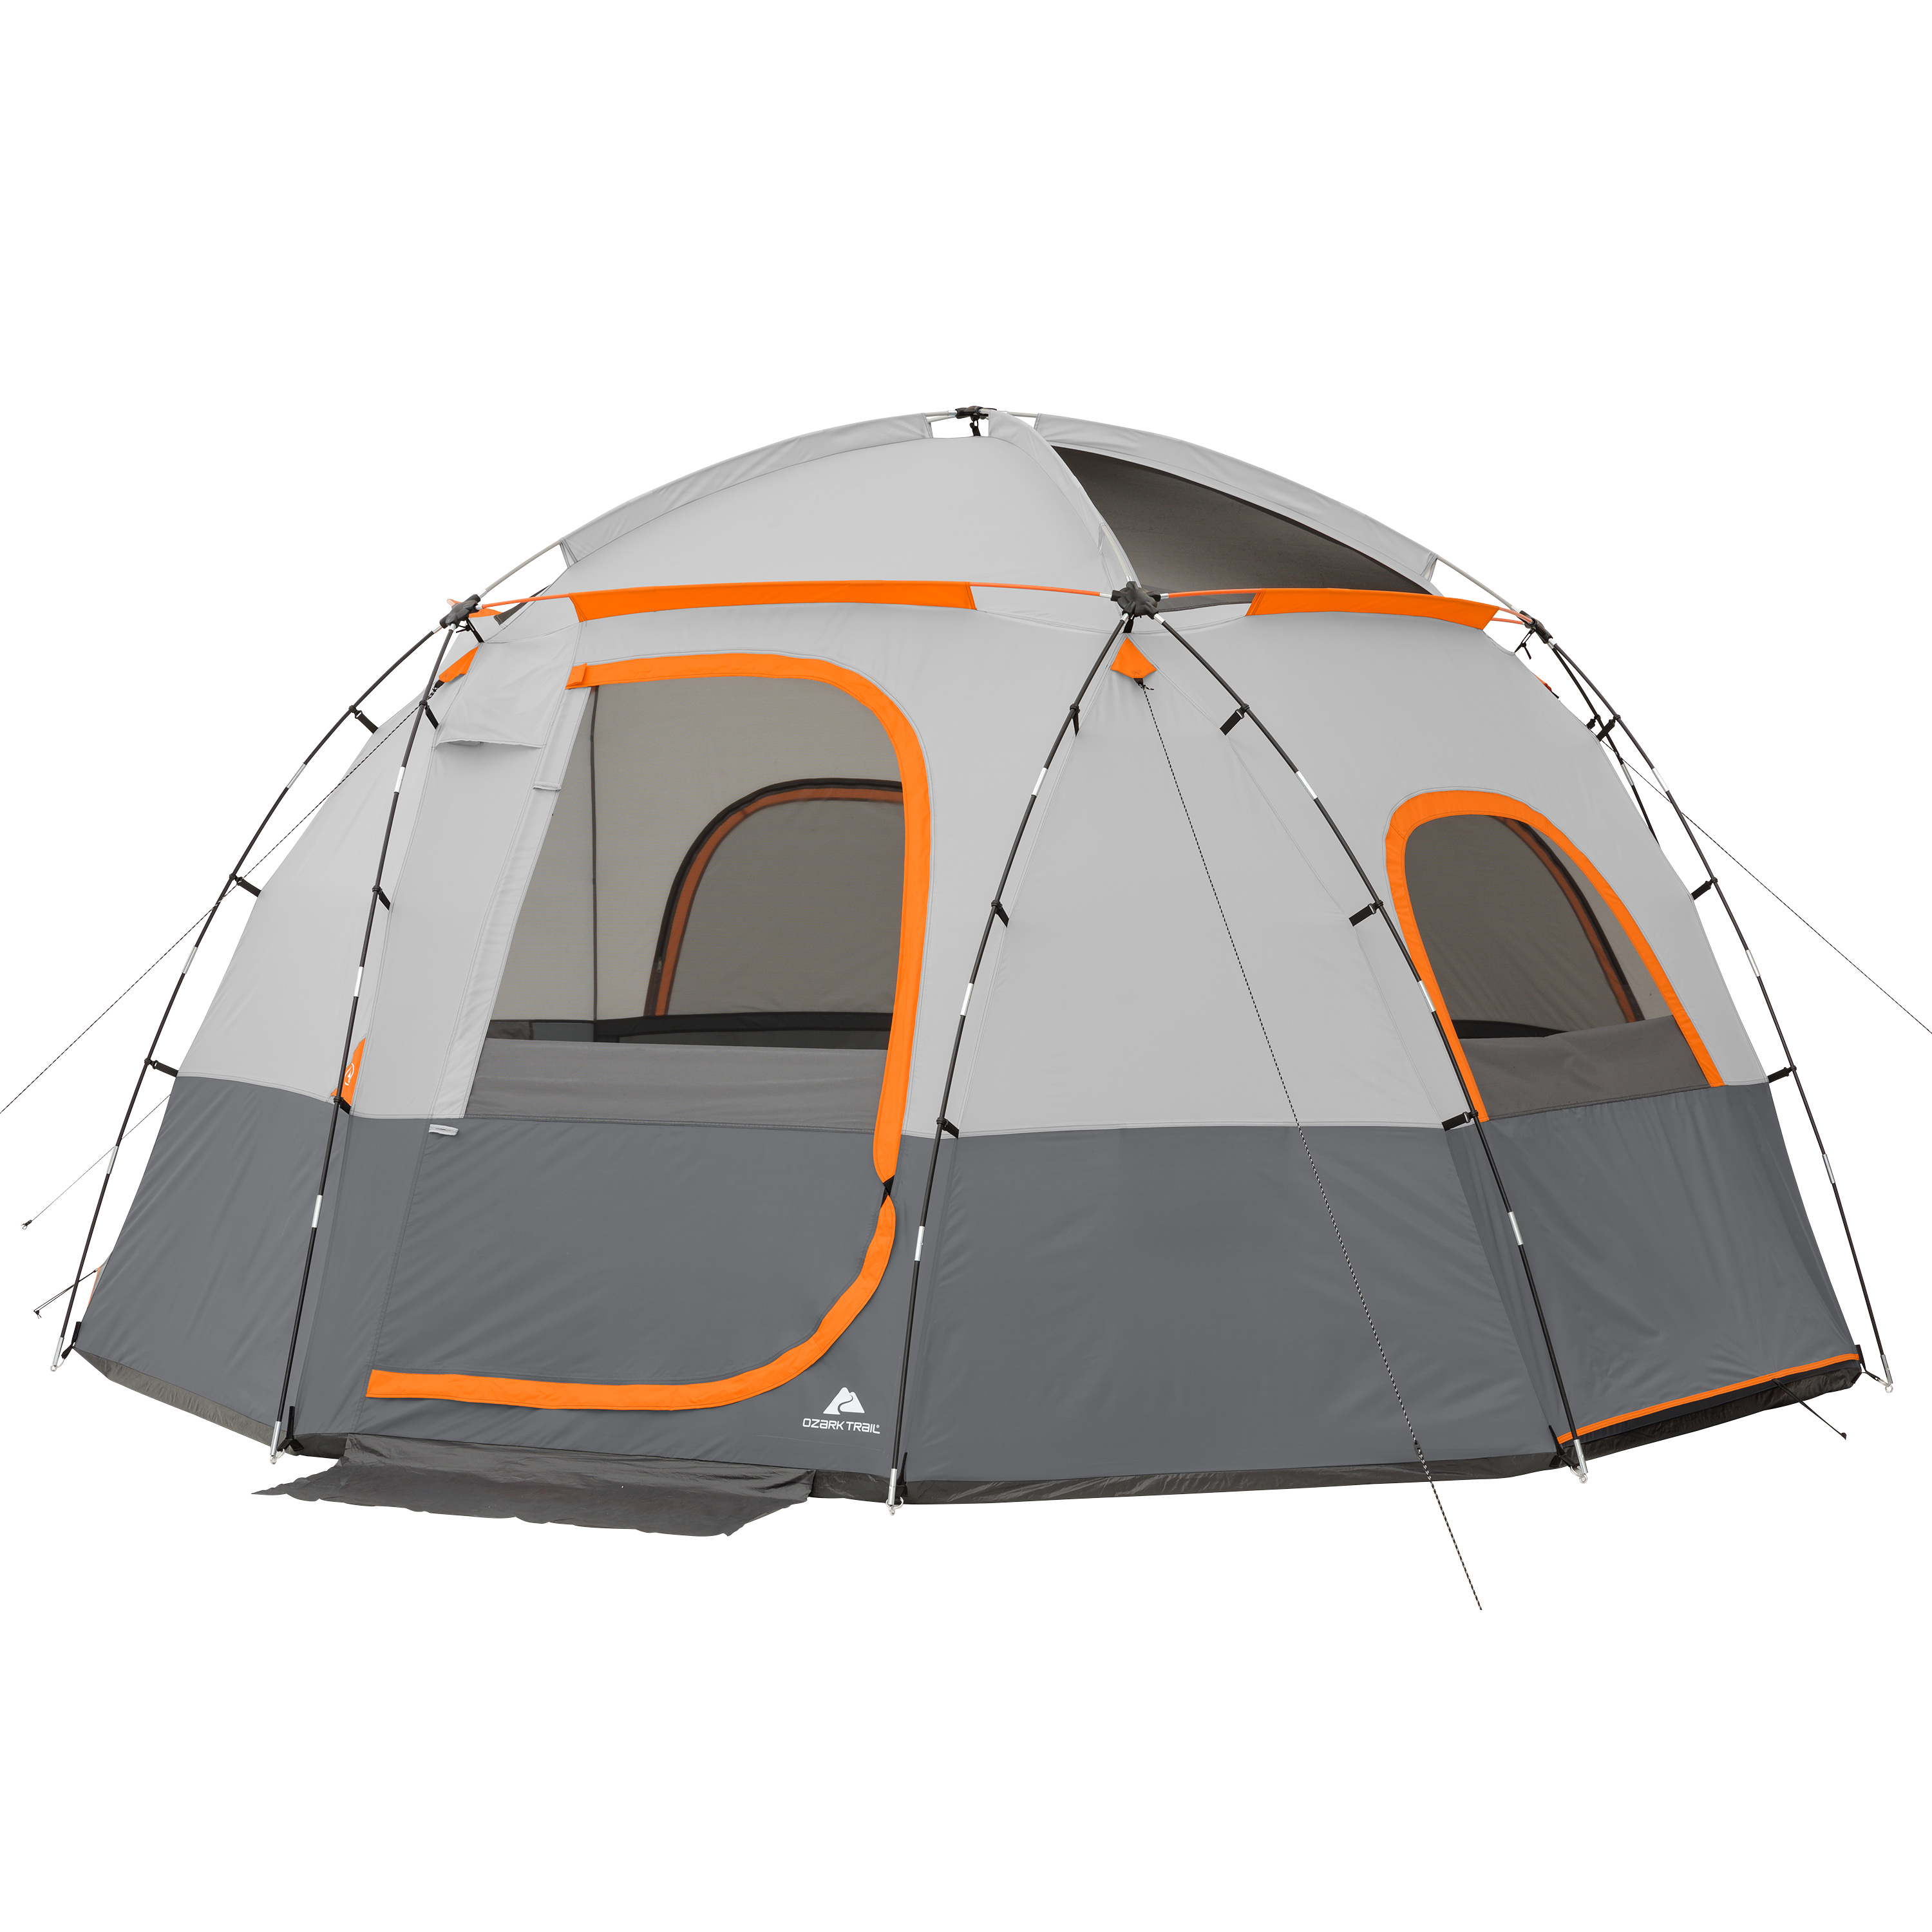 Ozark Trail 6-Person Sphere Tent with Rope Light by Ozark Trail